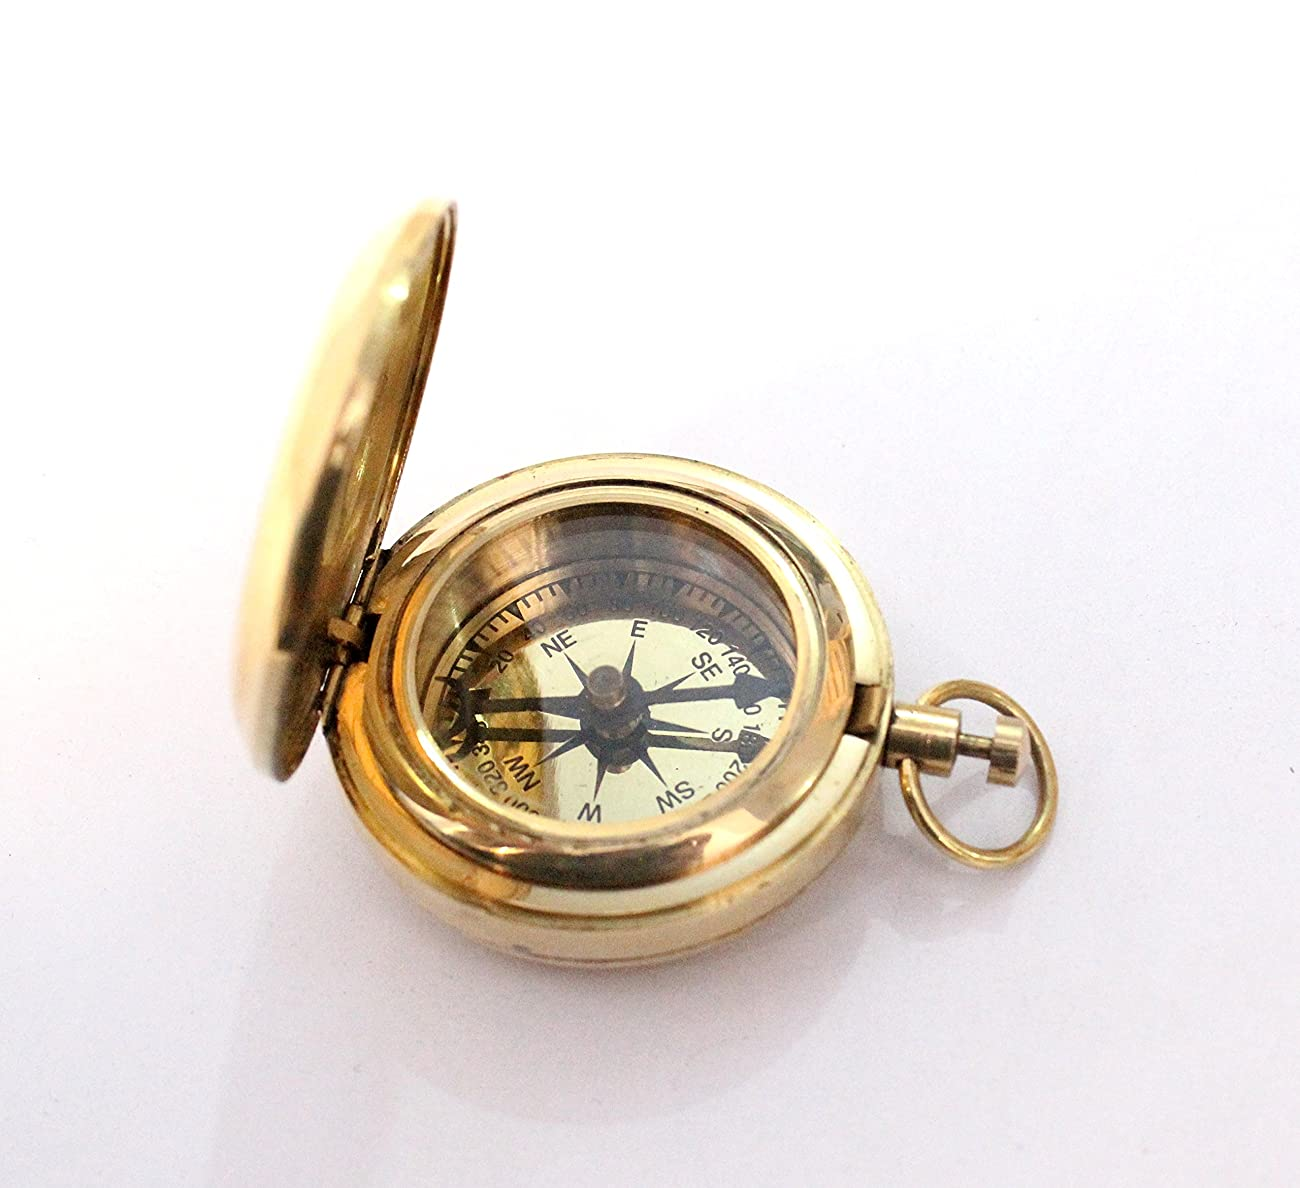 Nautical Collectible Retro Style Compass Decorative Gift Item Brass Finish Compass 1